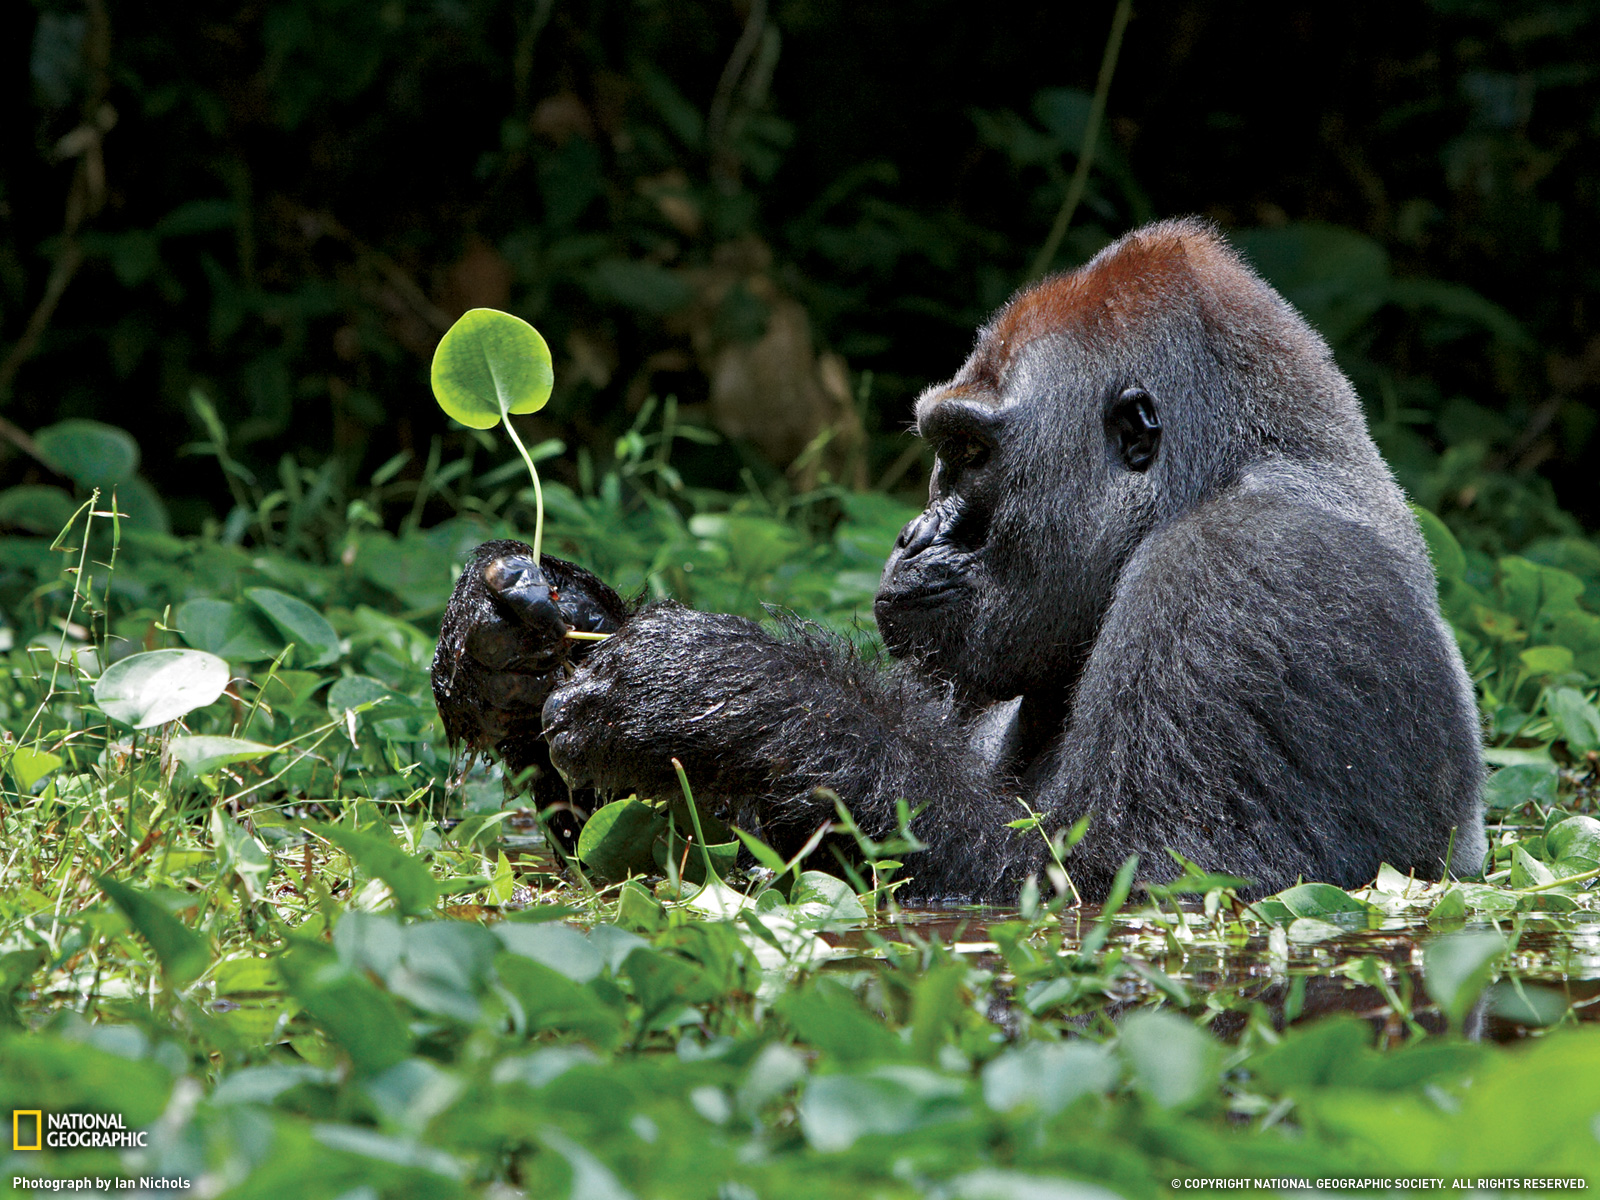 Silverback Gorilla Photo Nature Wallpaper National Geographic 1600x1200